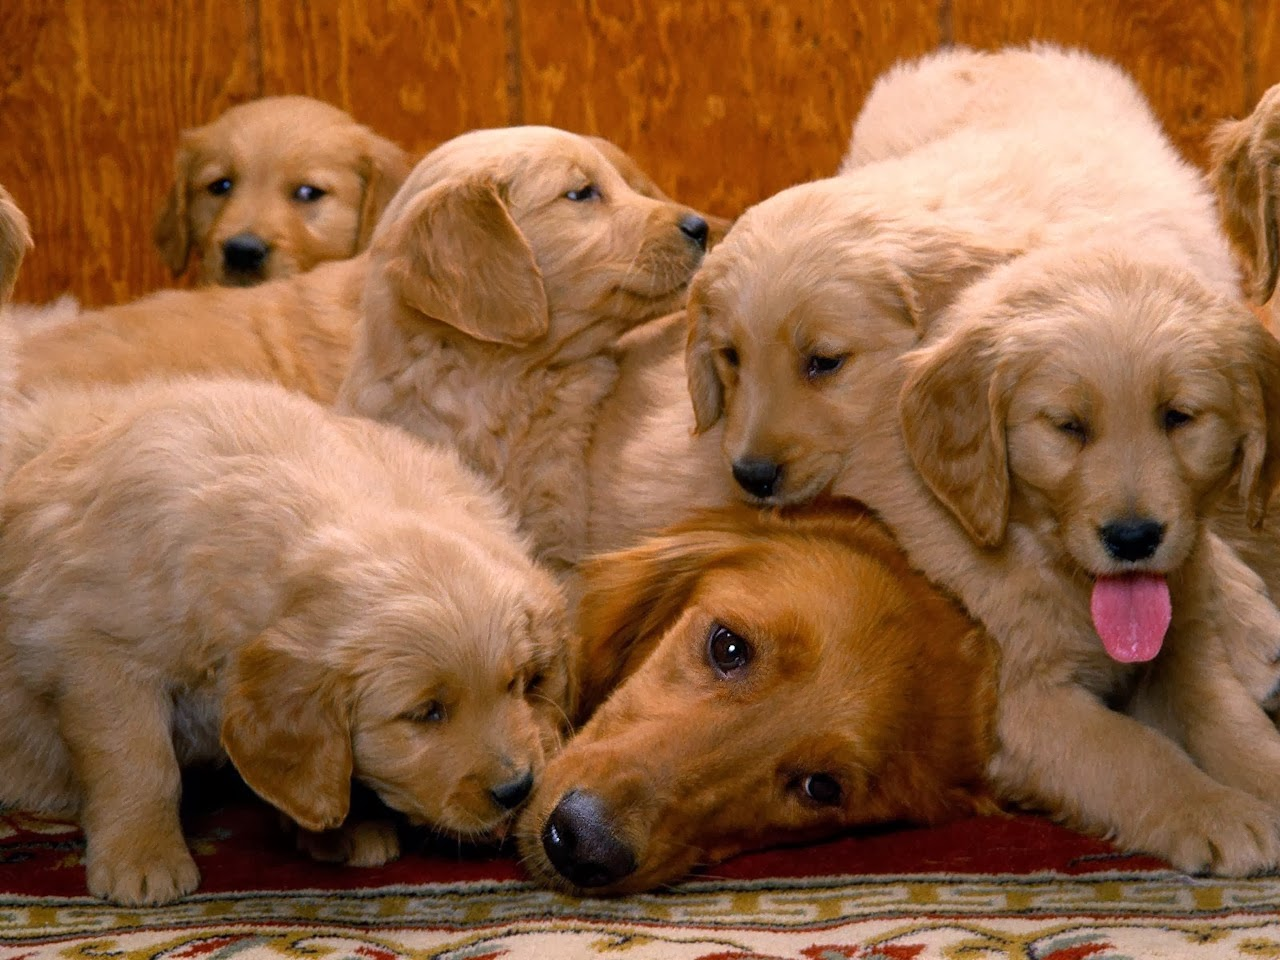 Cute dogs - part 9 (50 pics), golden retriever mommy and her puppies